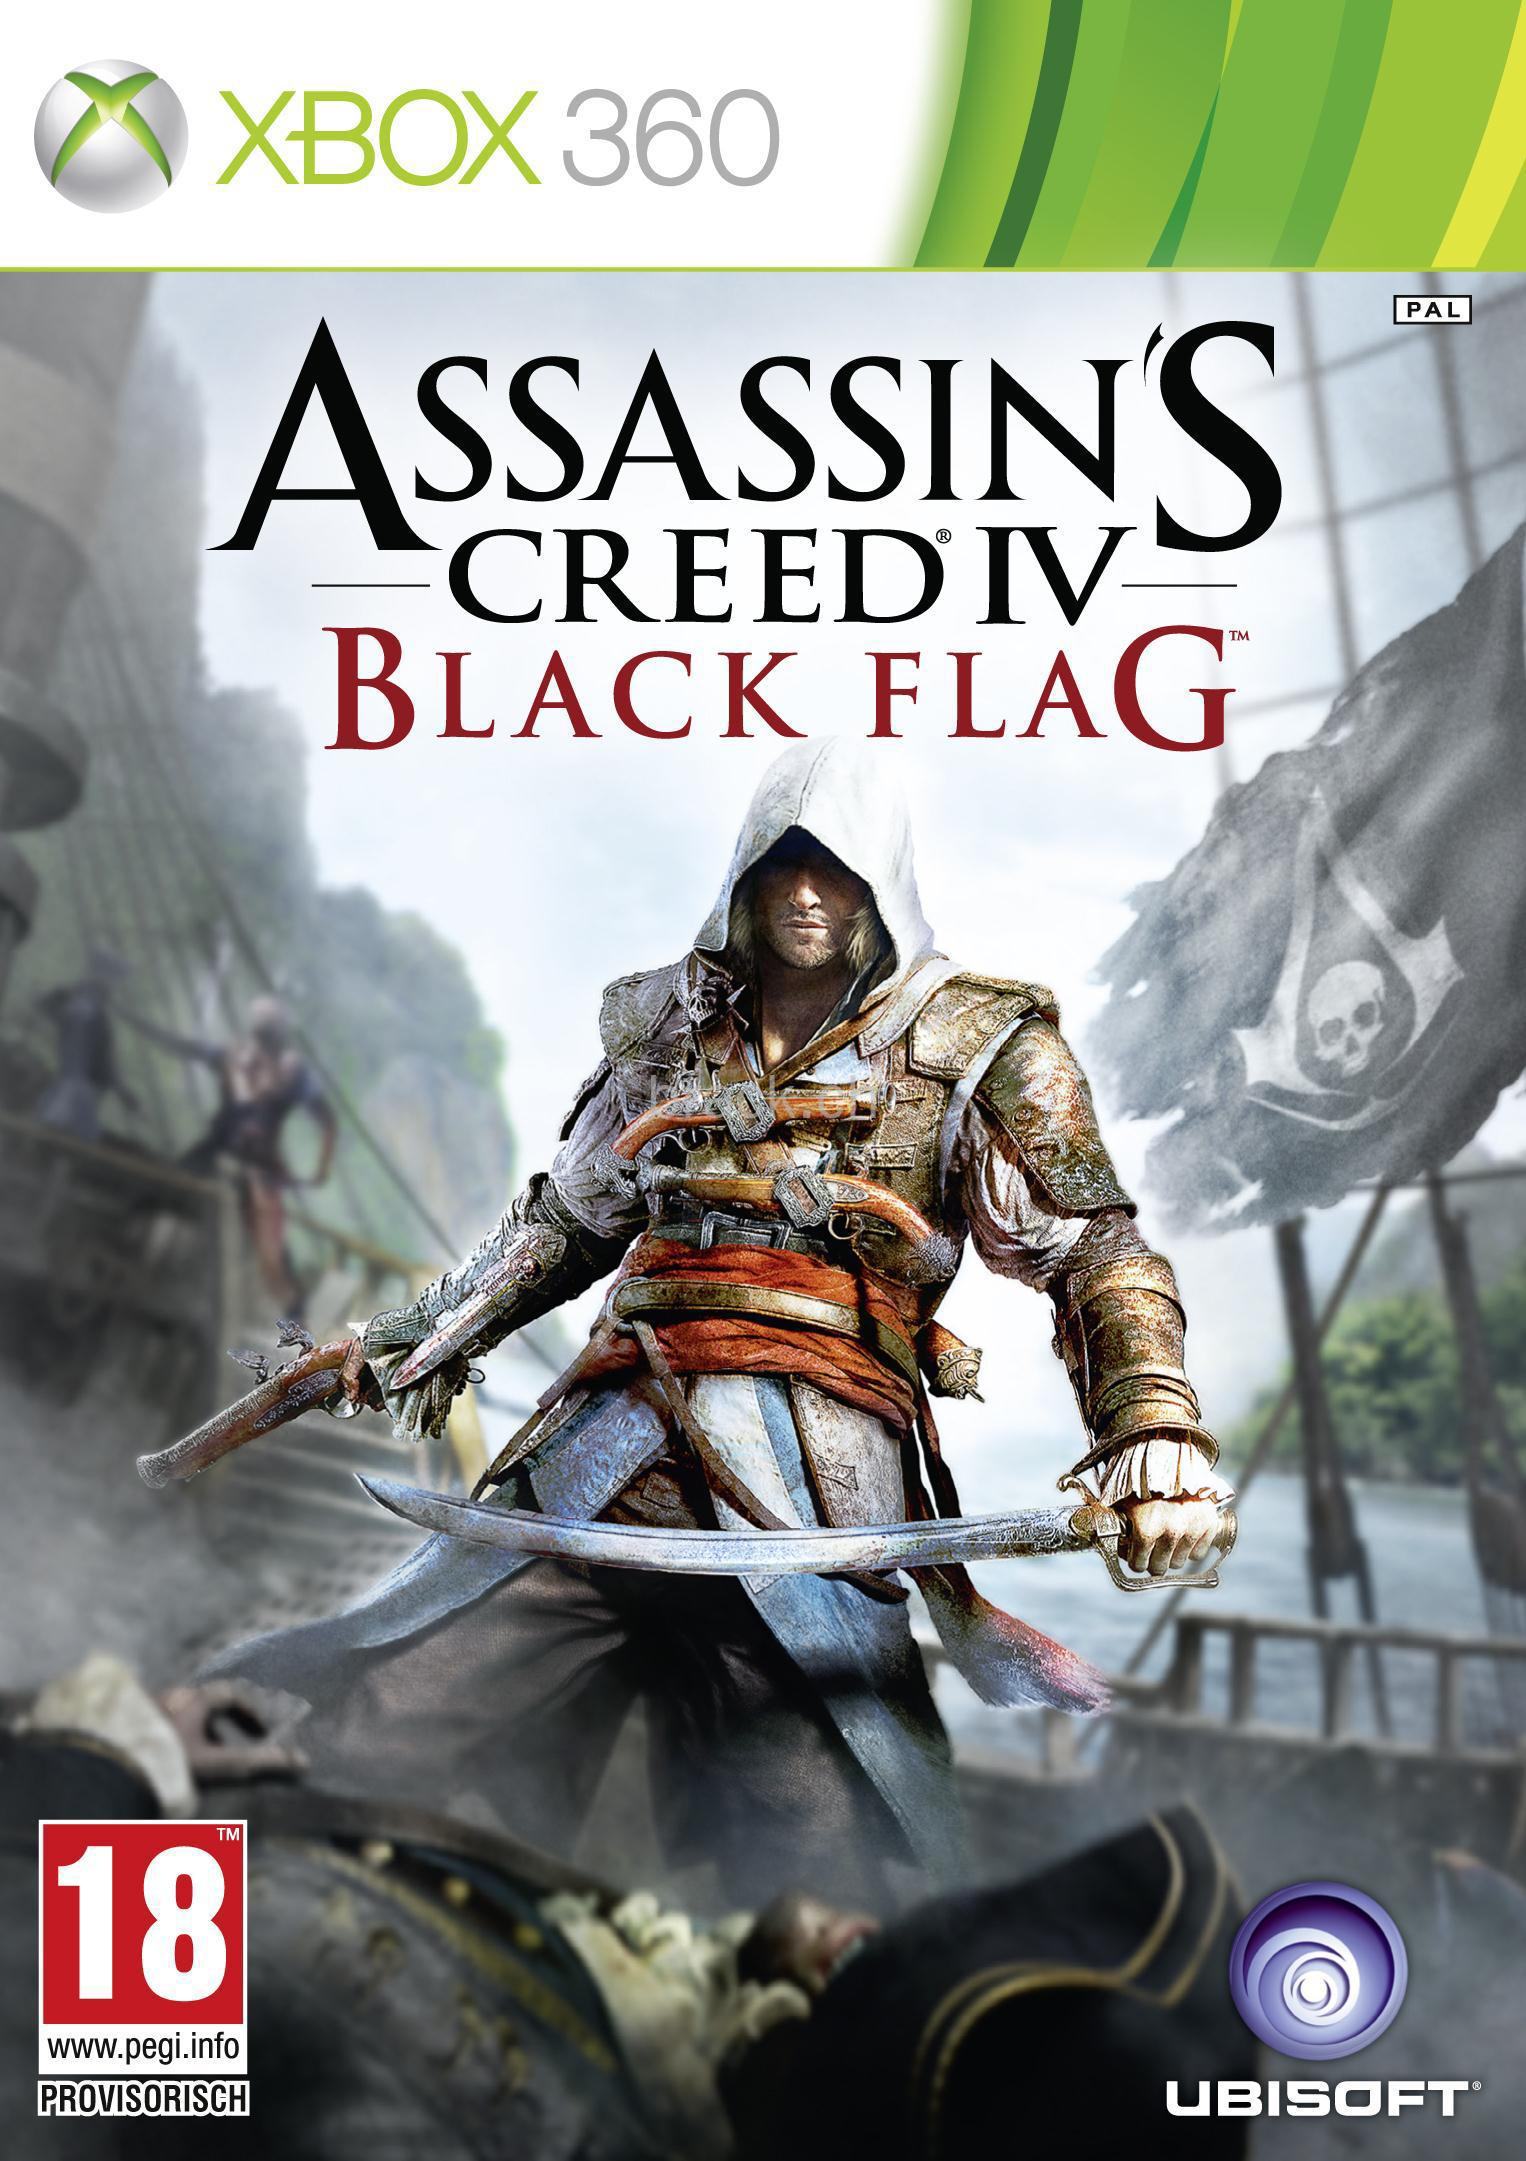 Assassins Creed IV Black Flag Announced 360 Cover